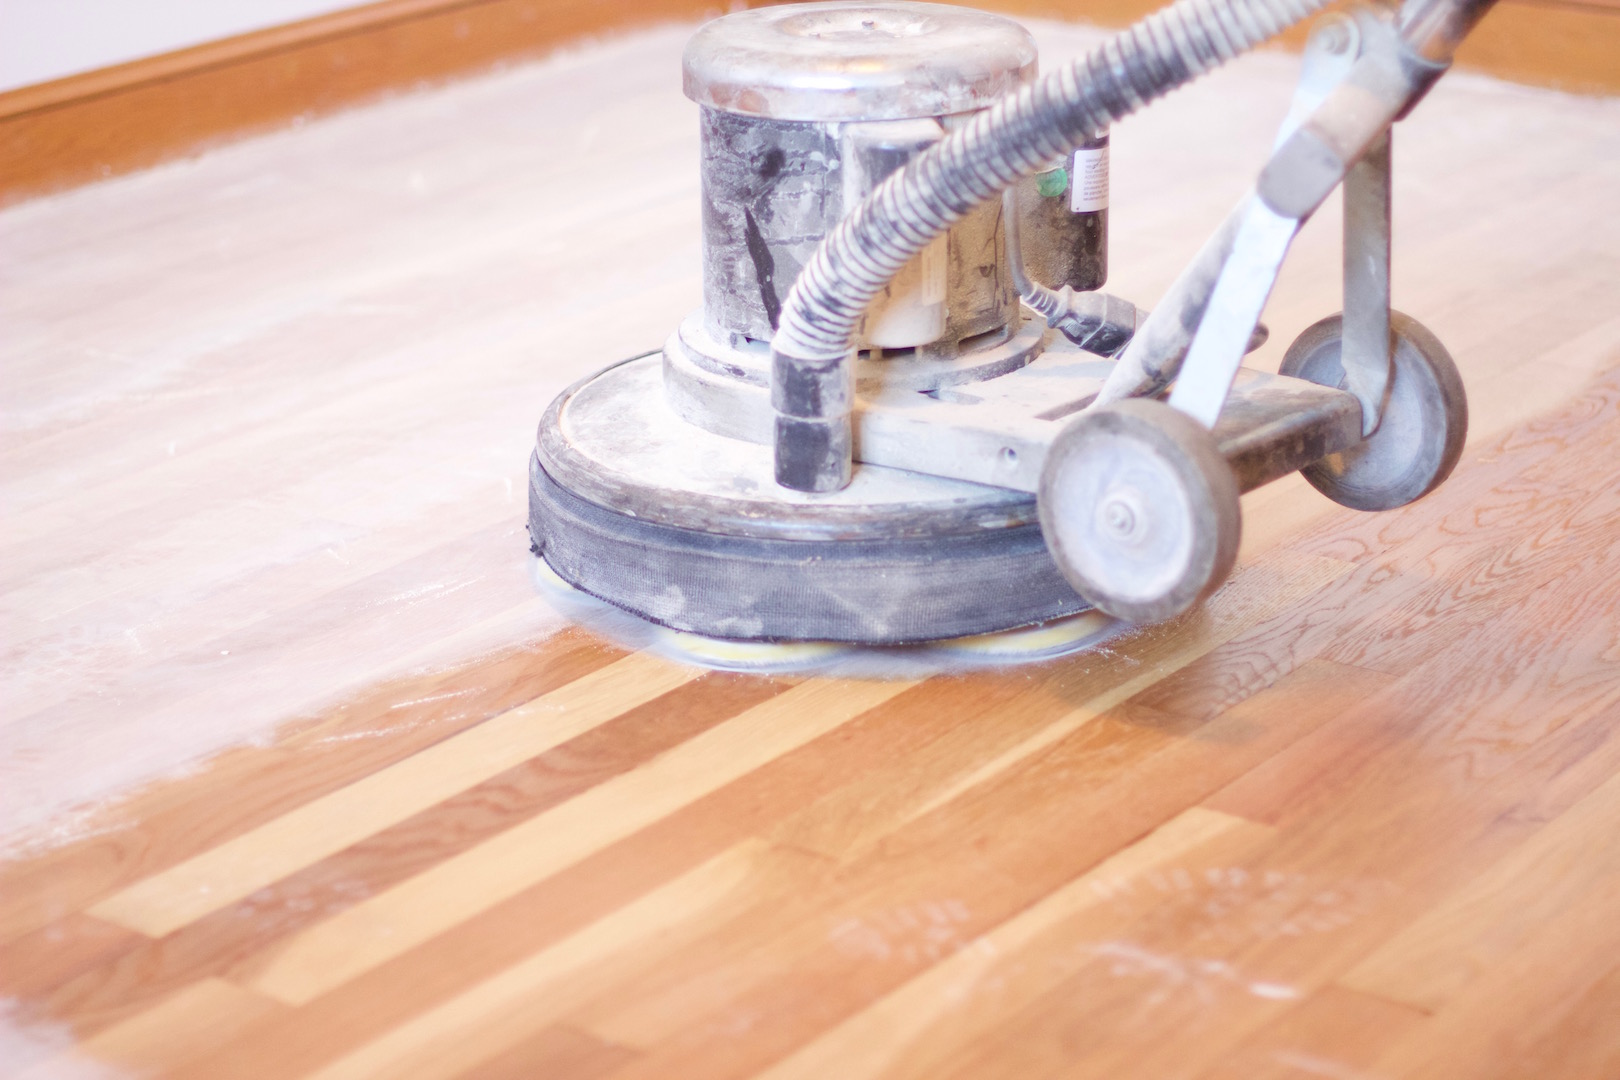 Gandswoodfloors hardwood floor buffer how to lynnbostonwellesley floor buffer with multi disc driver solutioingenieria Gallery